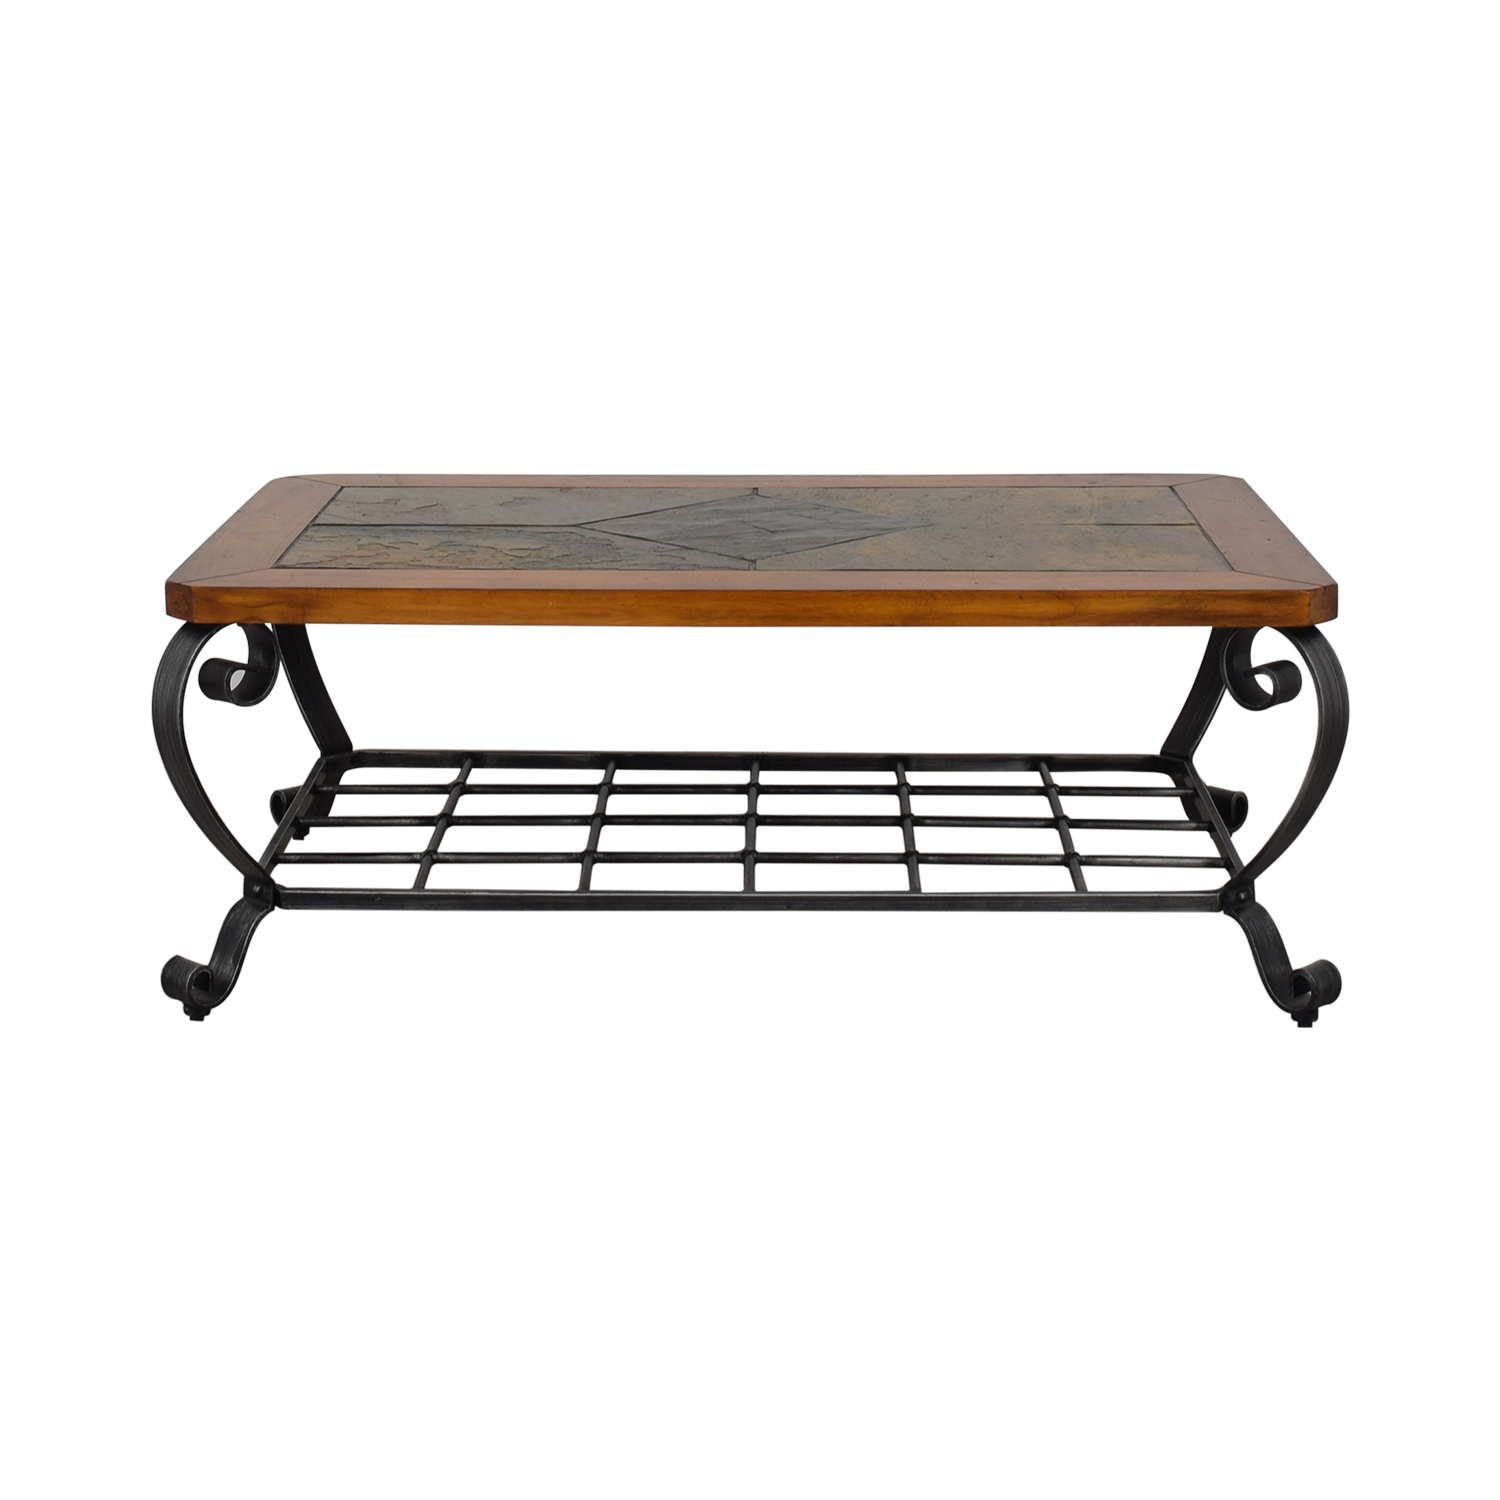 Raymour & Flanigan Raymour & Flanigan Tile Top Coffee Table Tables